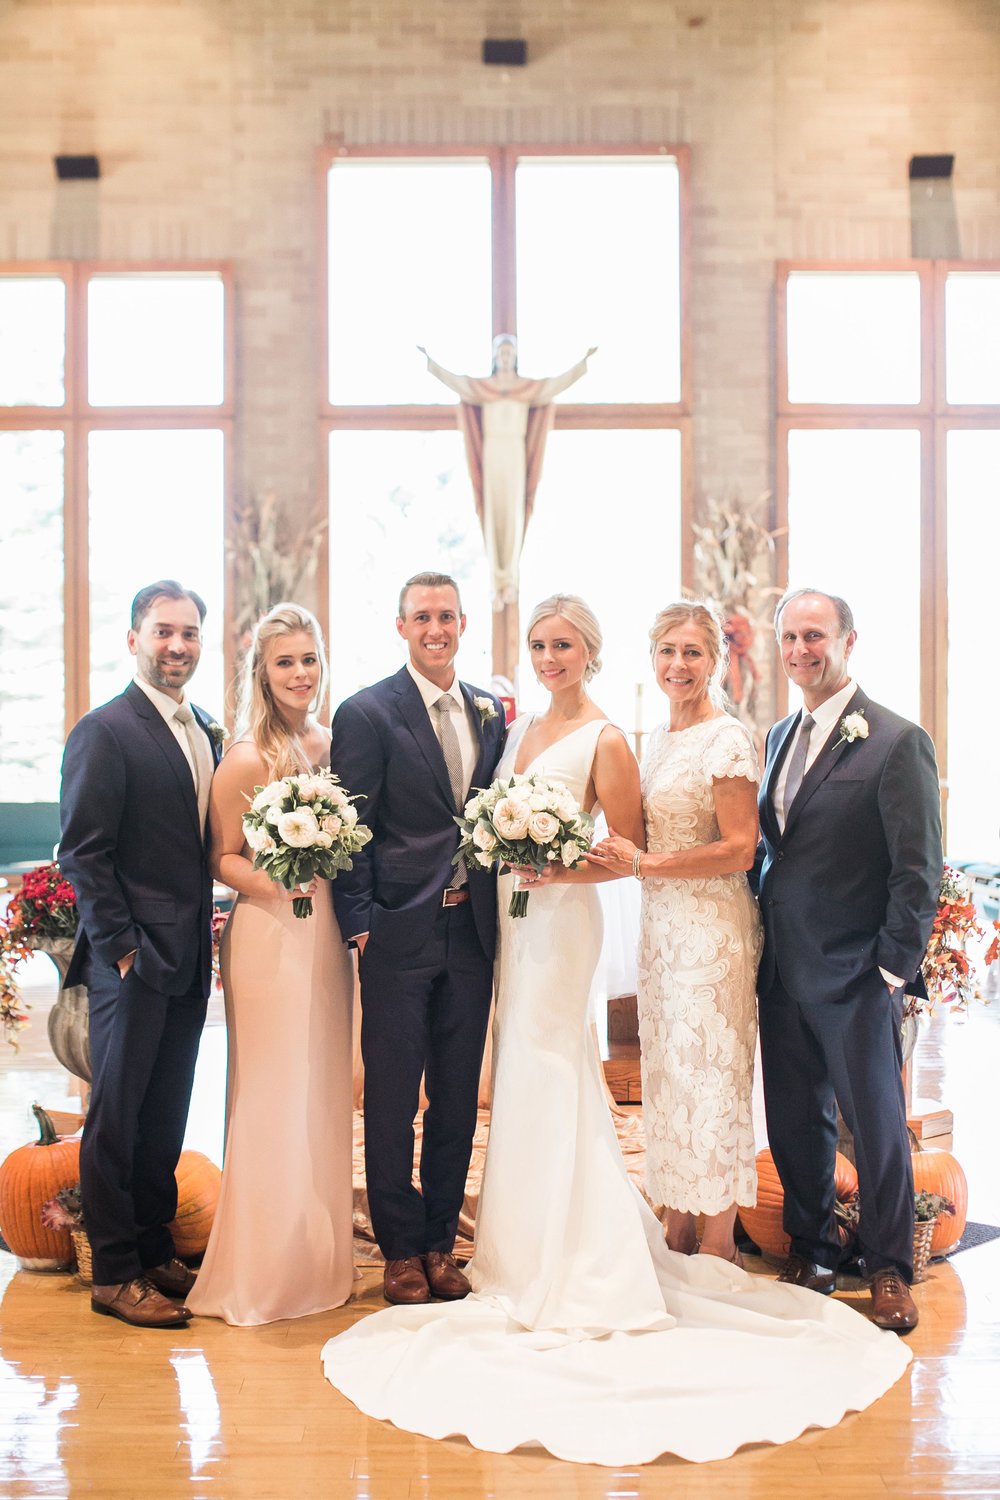 Wedding Family Photos Ivory and Bliss Photography.jpg